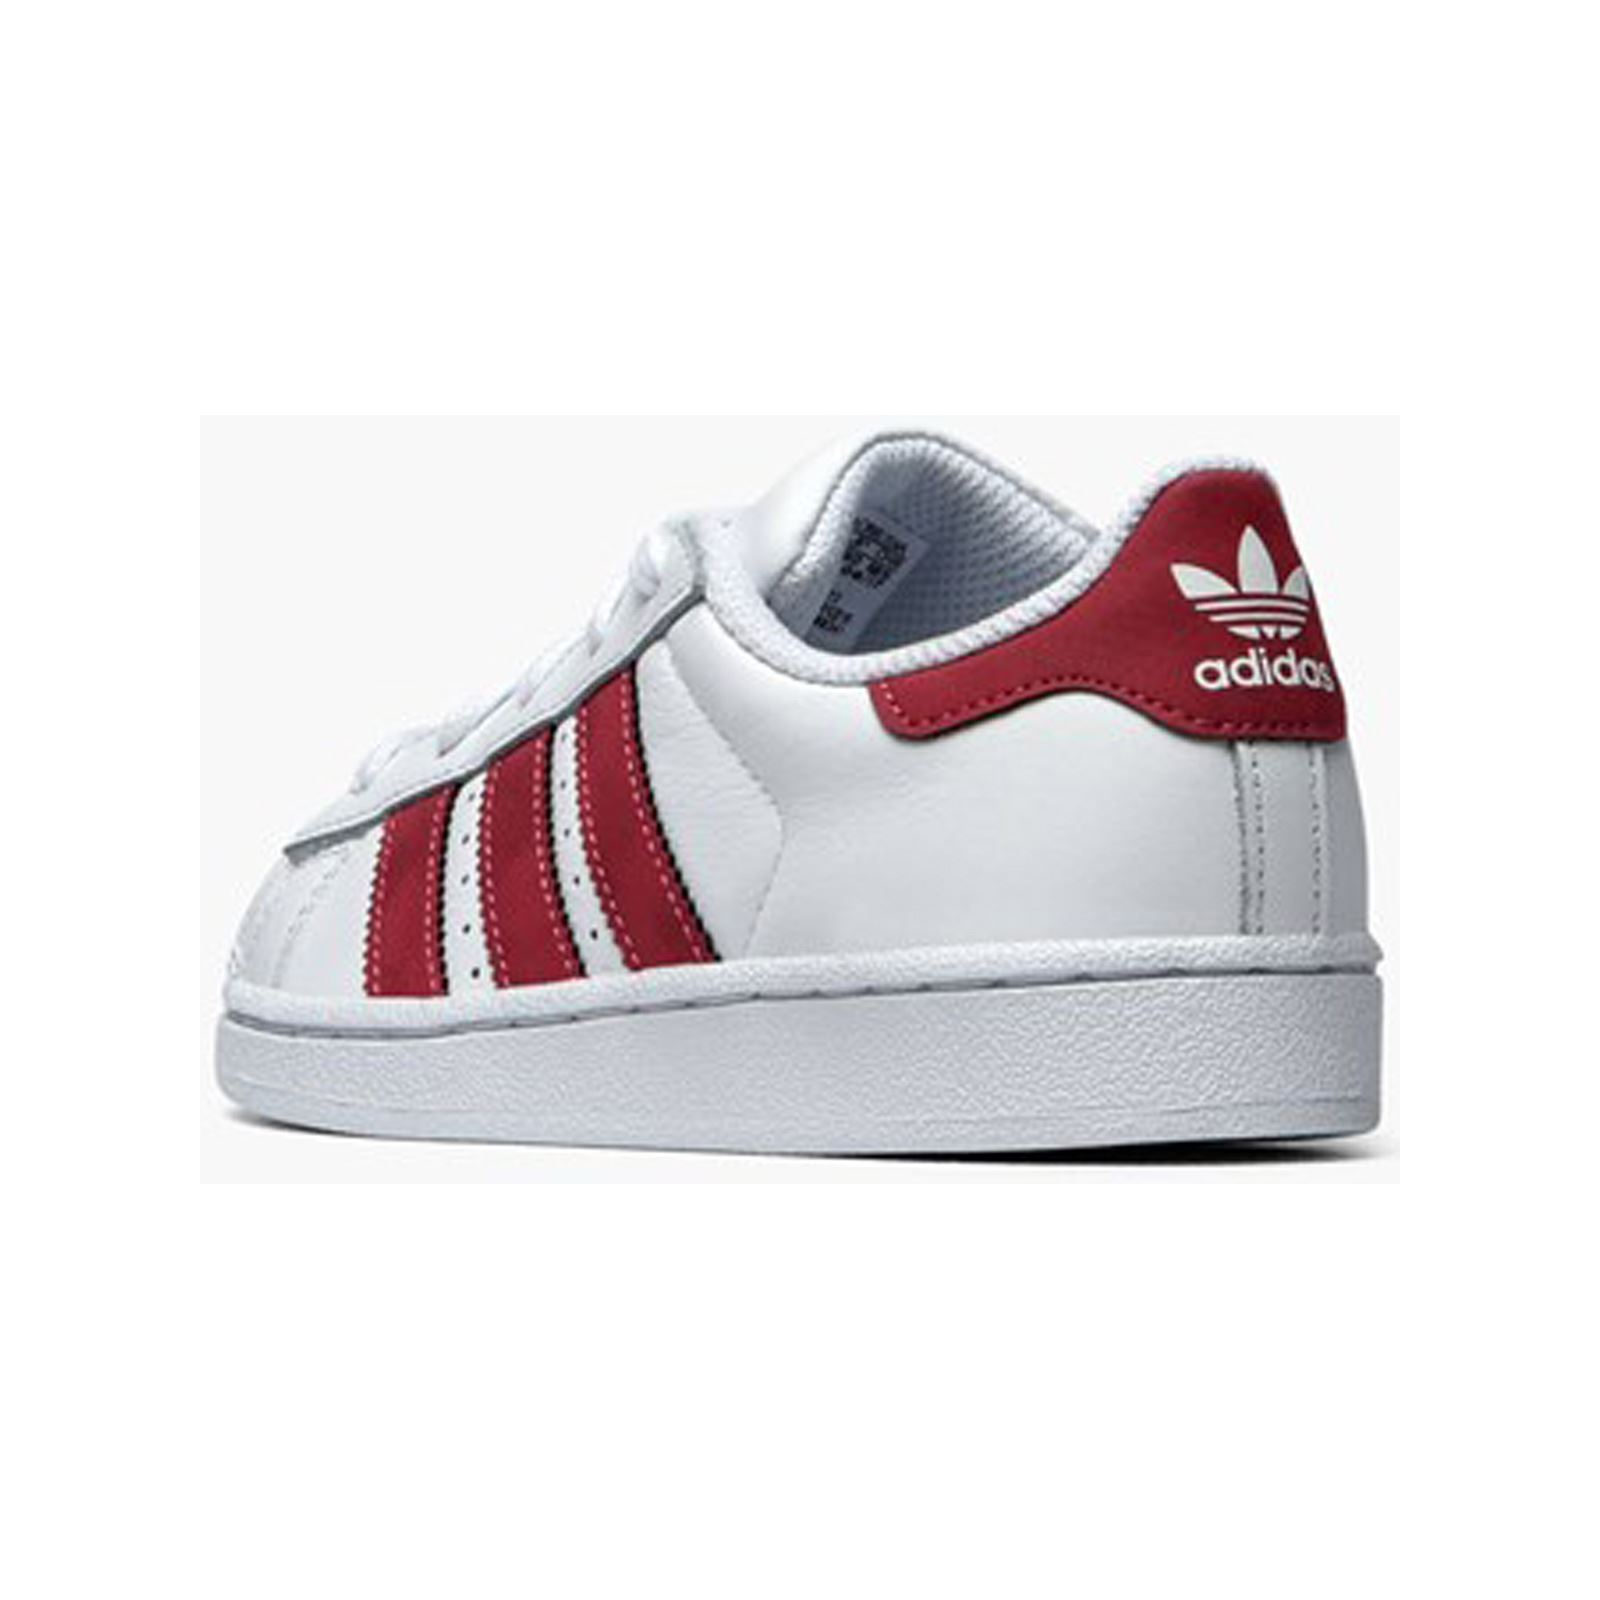 adidas Originals Superstar - Baskets en cuir bi-matière - blanc ... 7e916956f7d